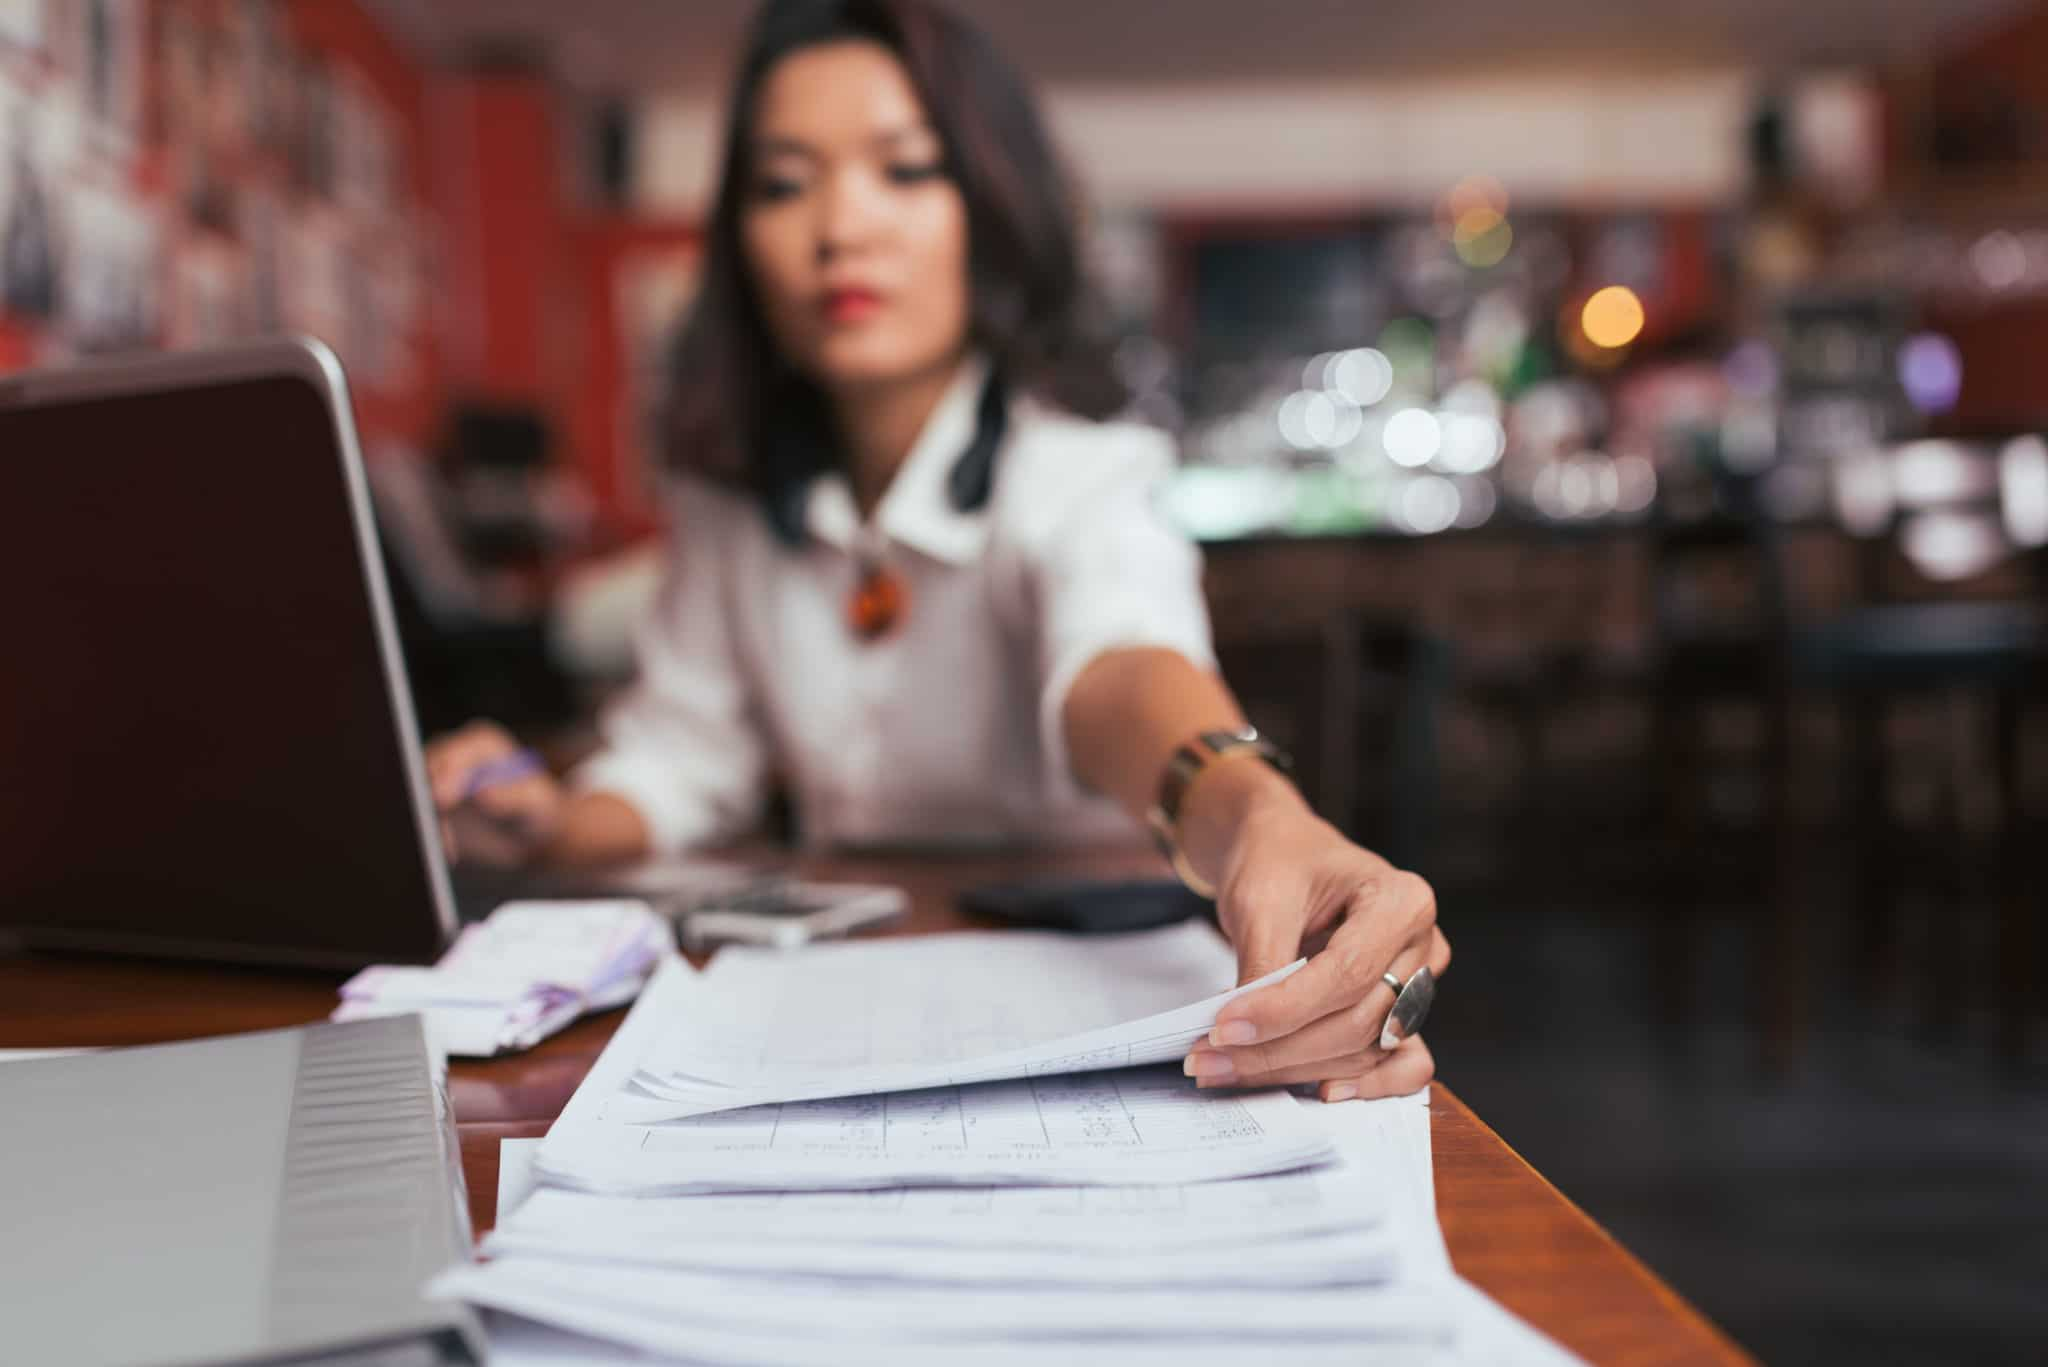 Business lady working with financial documents in her bar